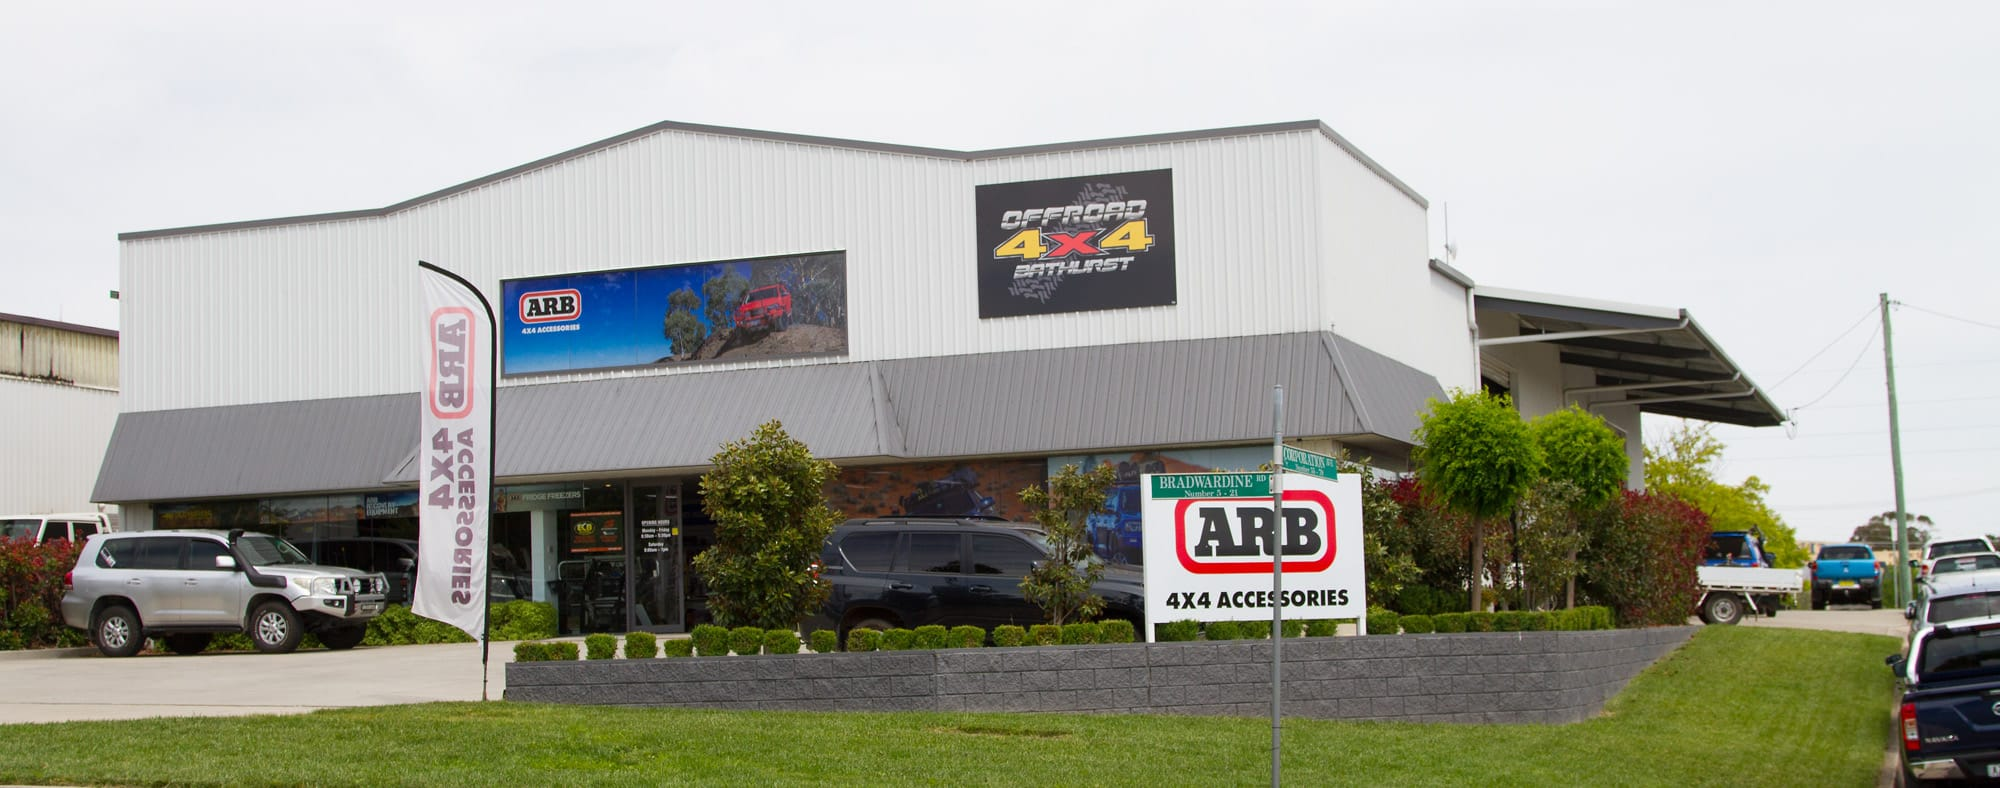 Picture of outside of showroom- Offroad 4x4 Bathurst Showroom